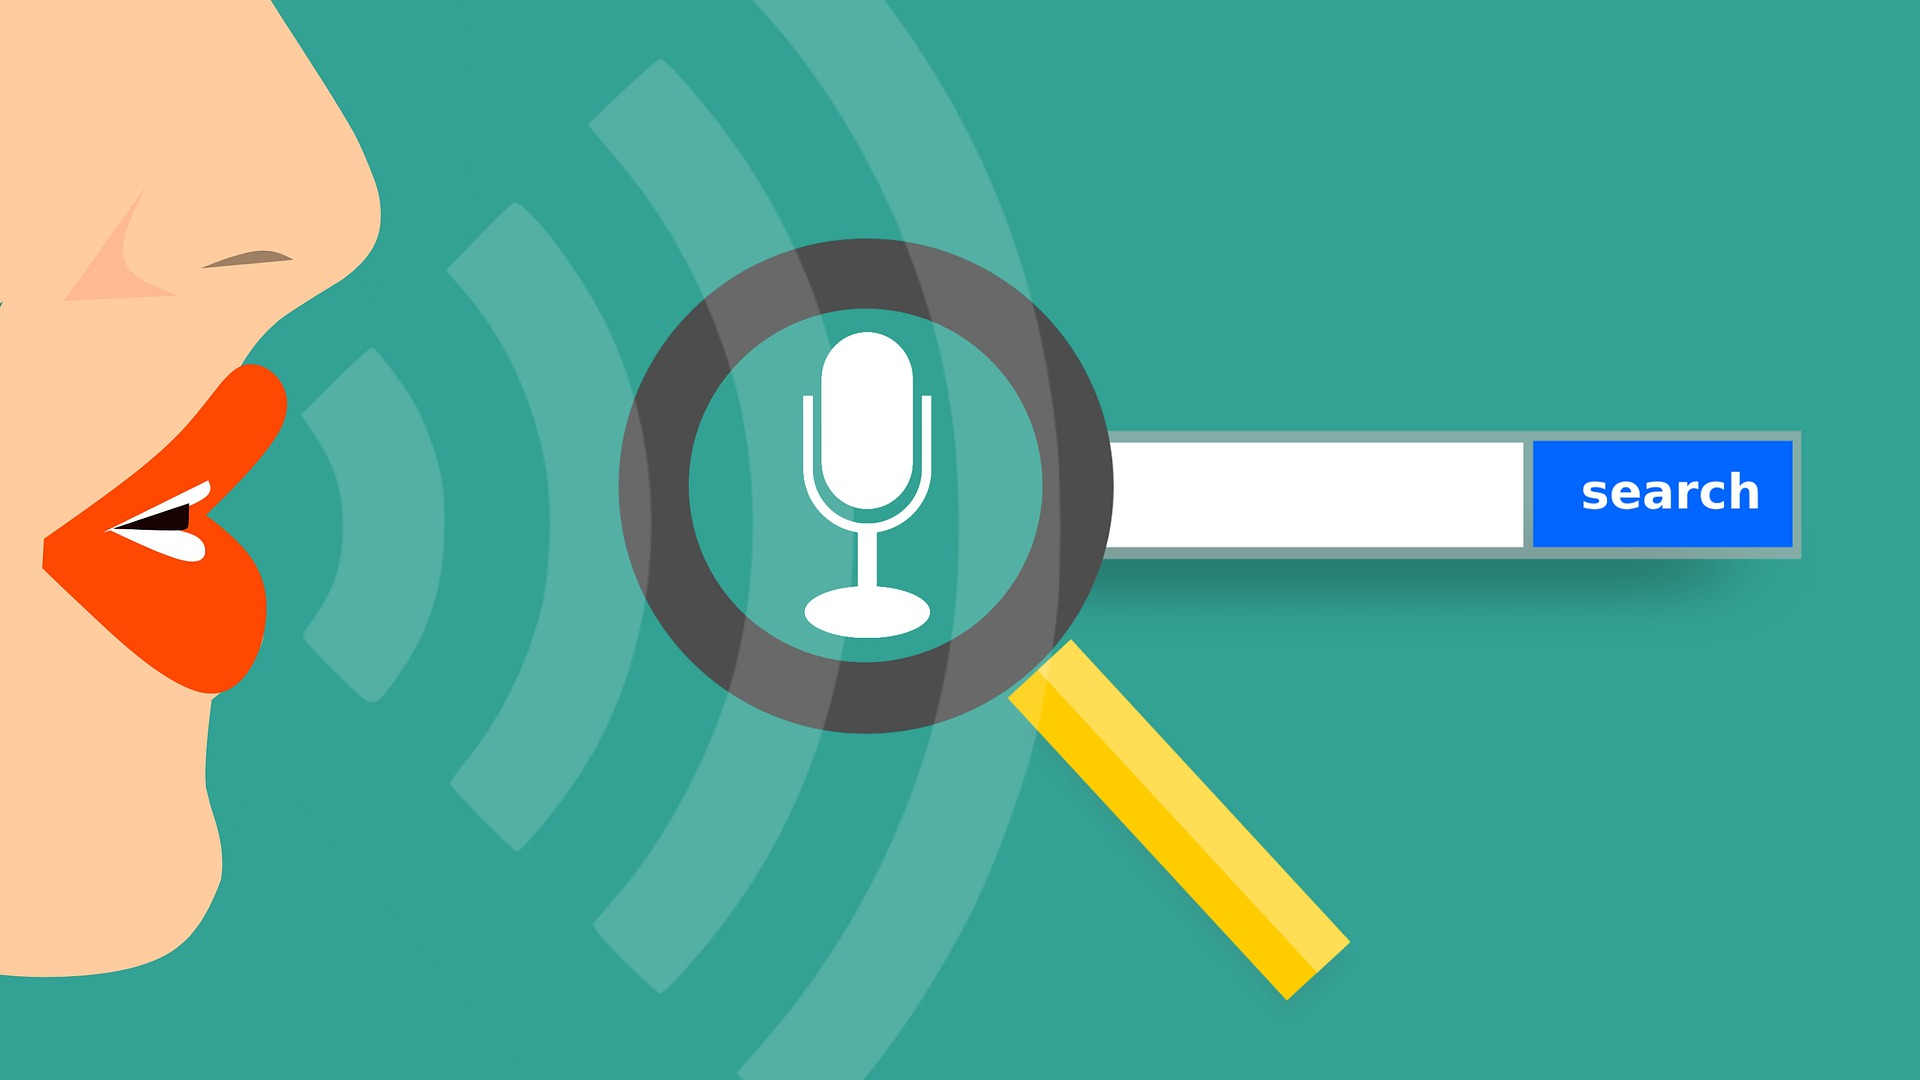 Voice SEO Graphic showing lips speaking, a microphone, magnifying glass and search bar